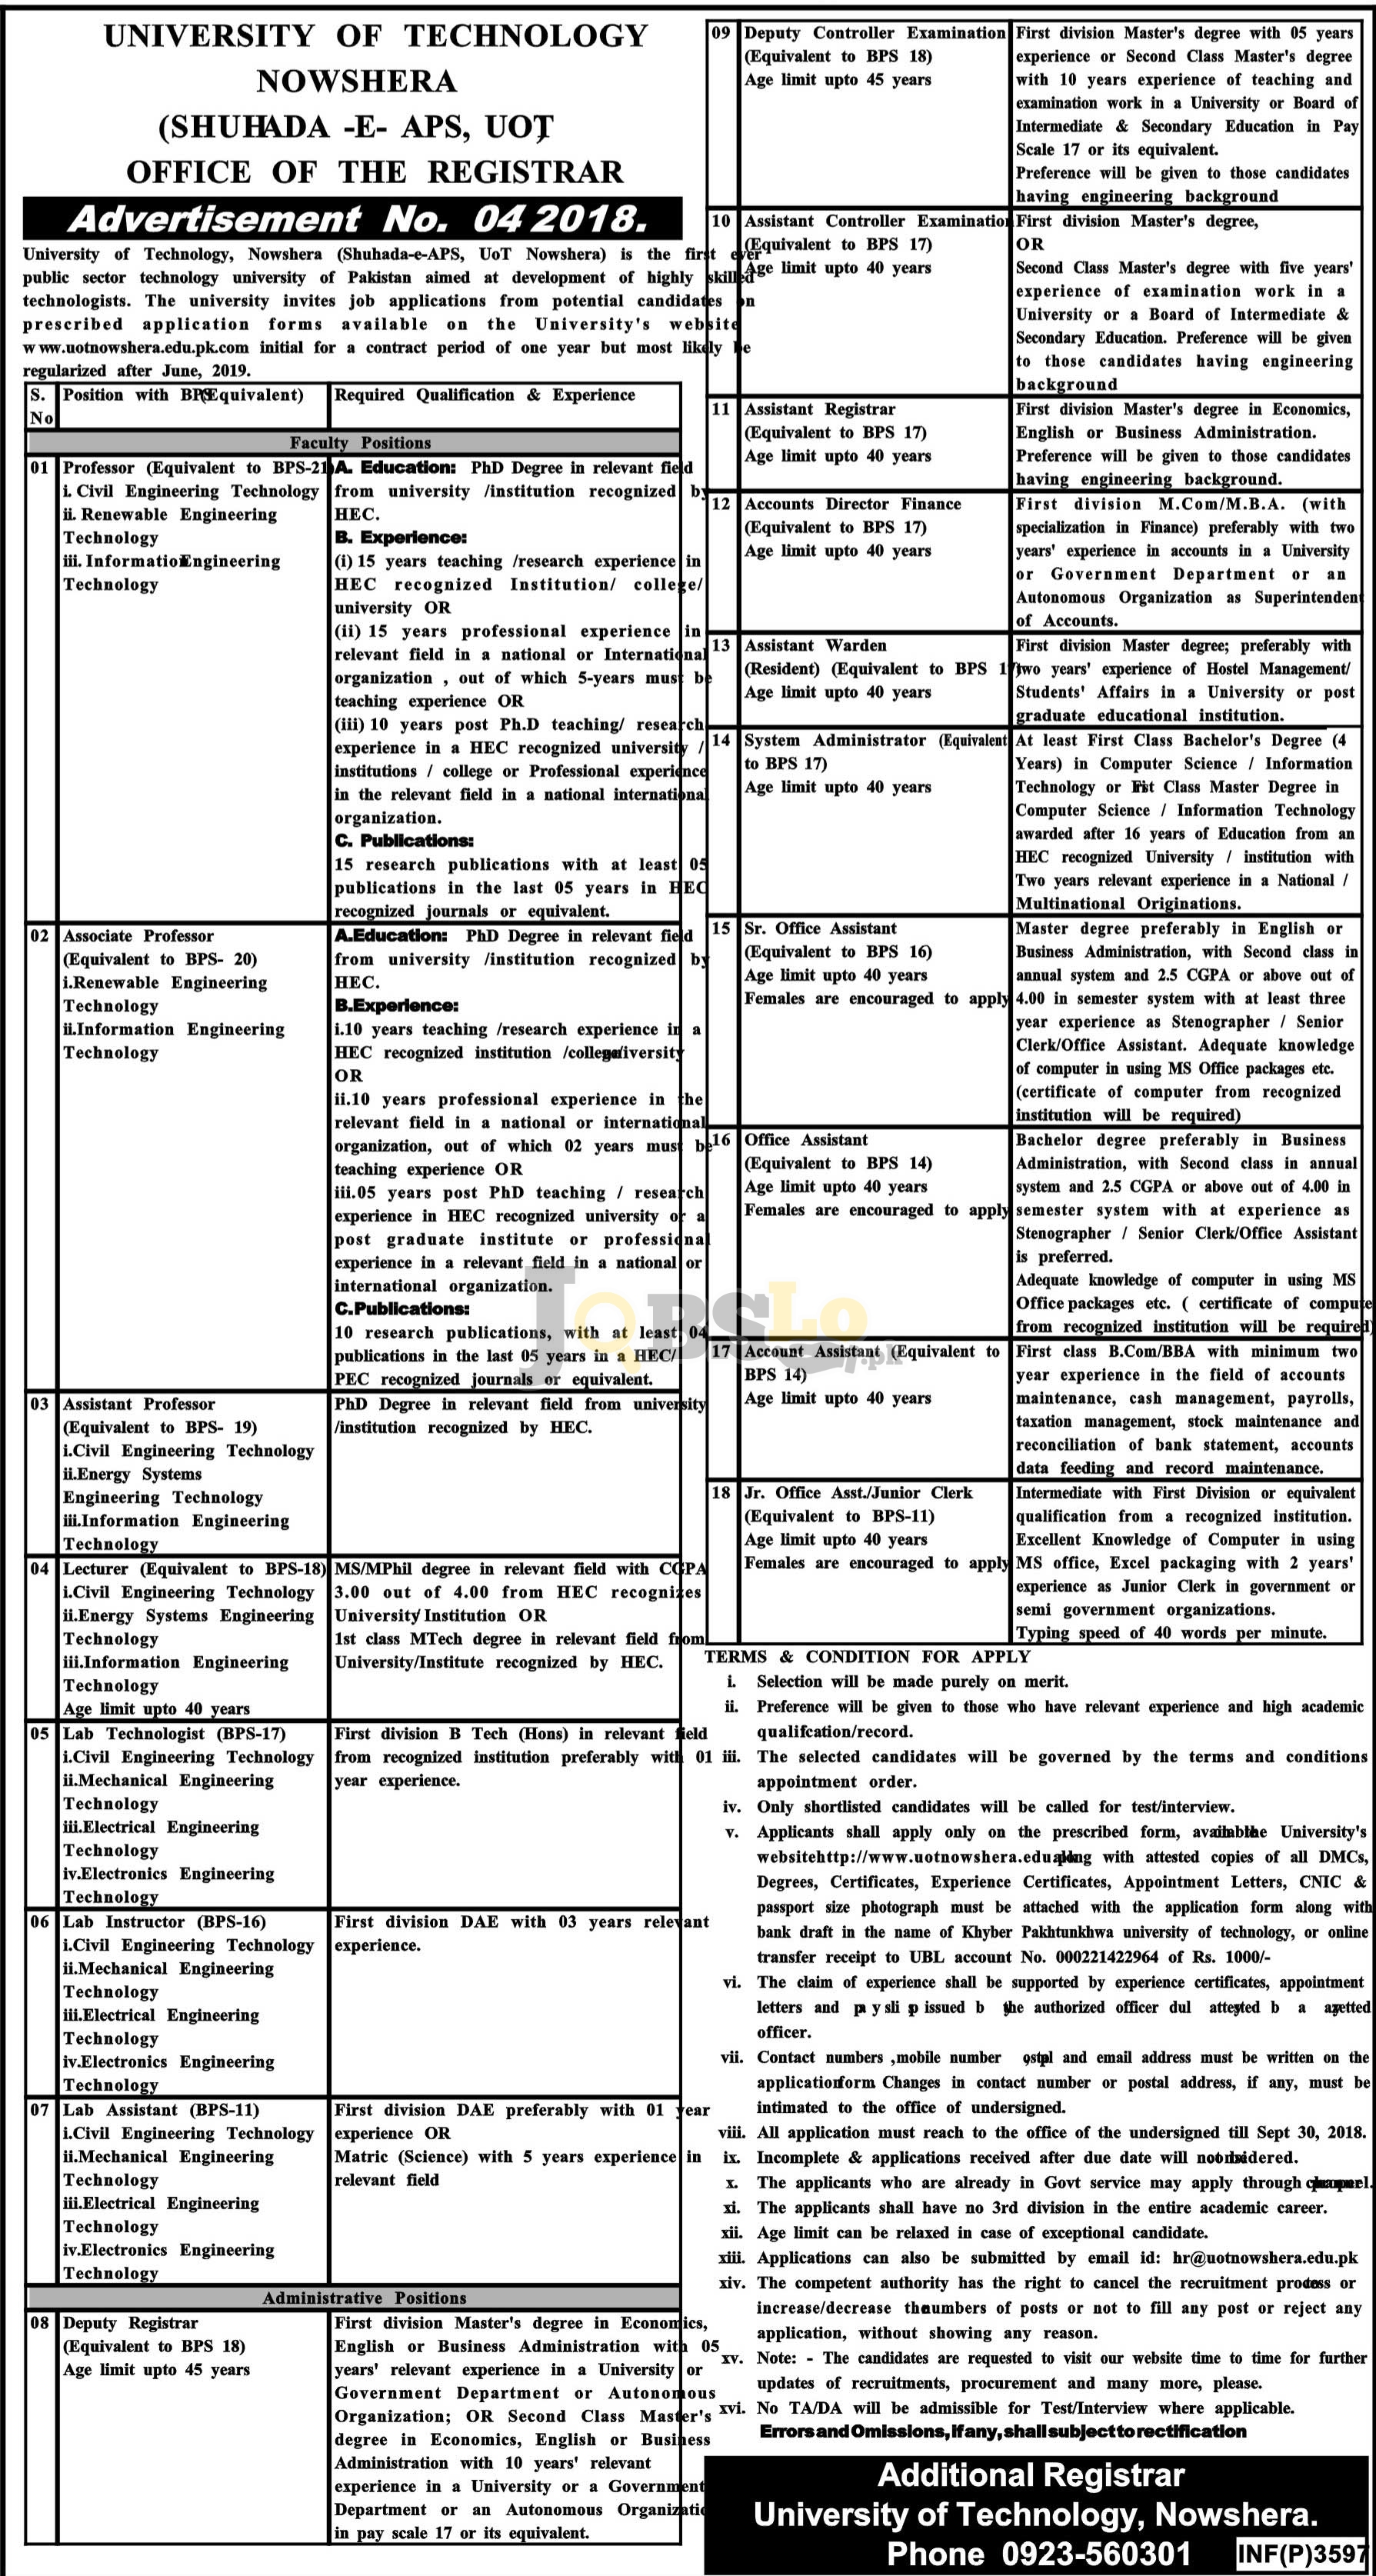 University of Technology Nowshera Job 2018 UOT Application Form Downlaod Latest Advertisement